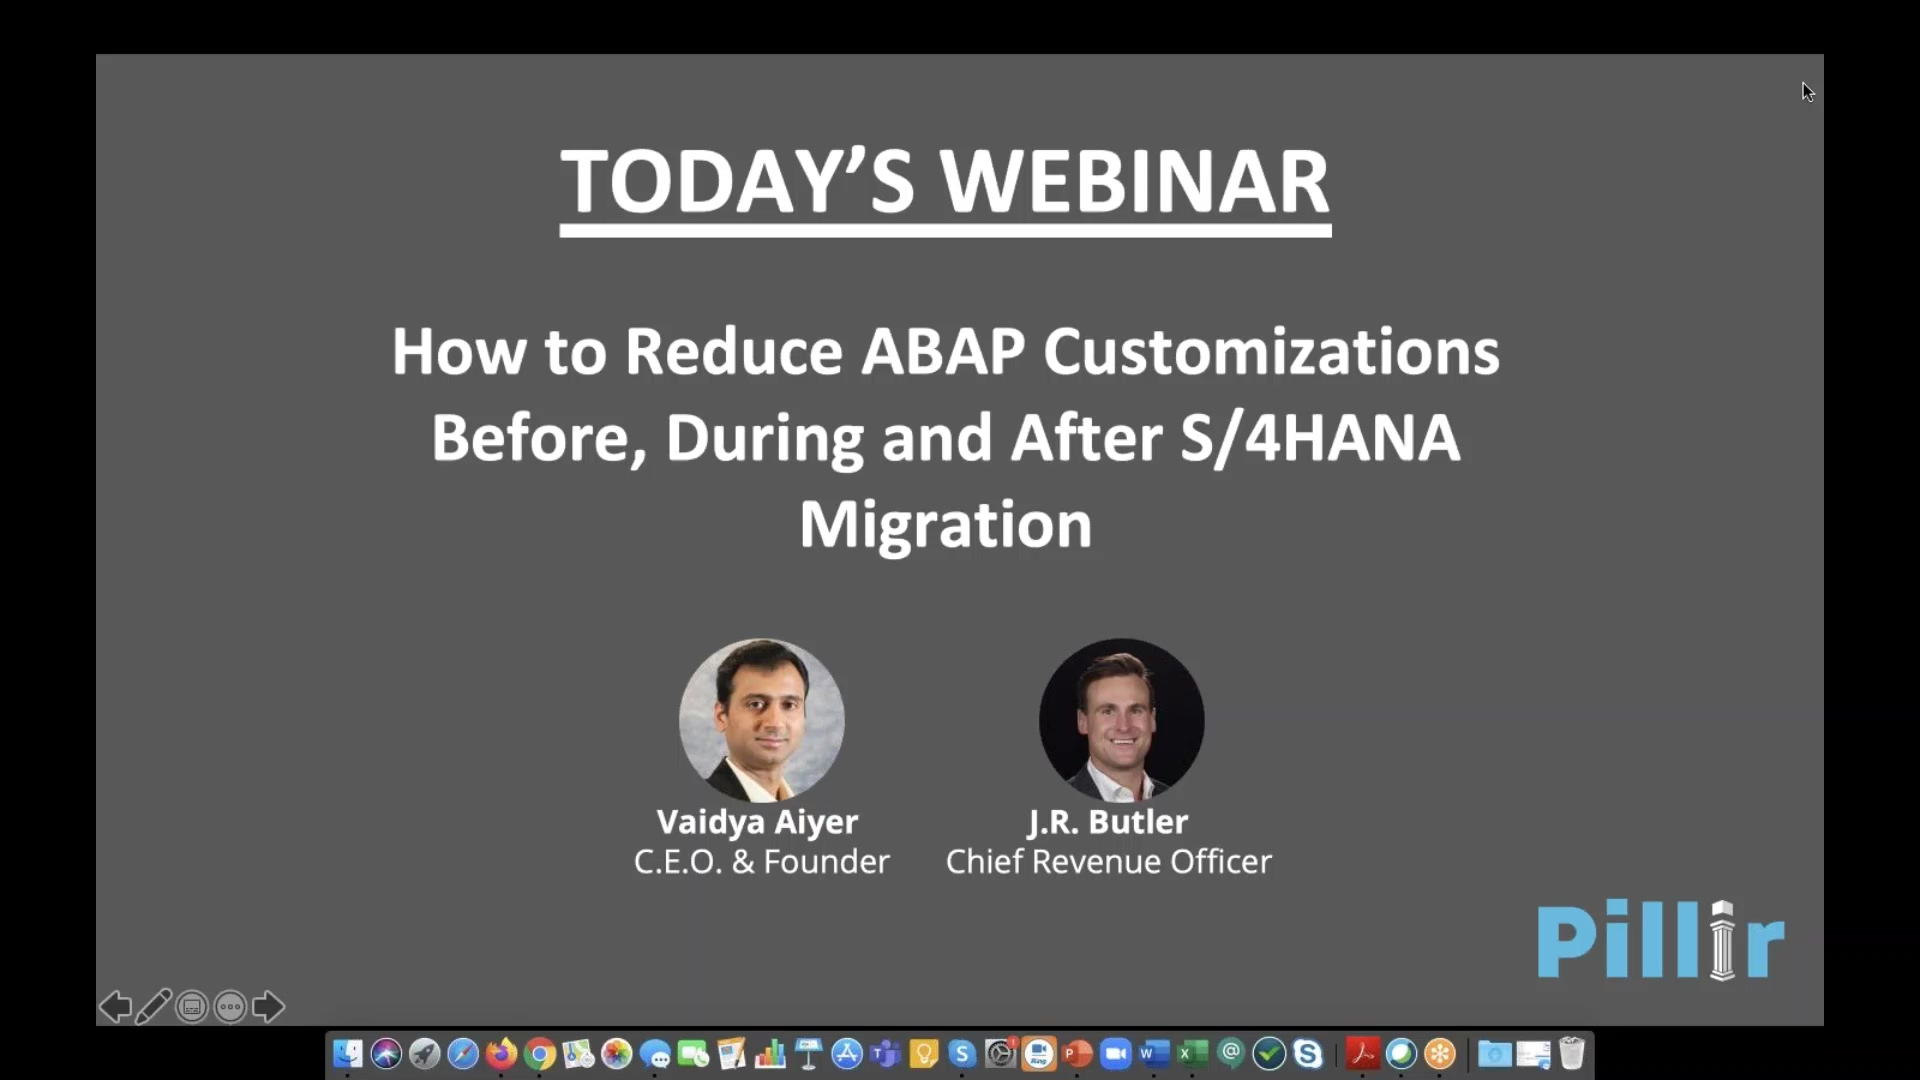 How To Reduce ABAP Customizations Before, During and After S-4HANA Migration - Final